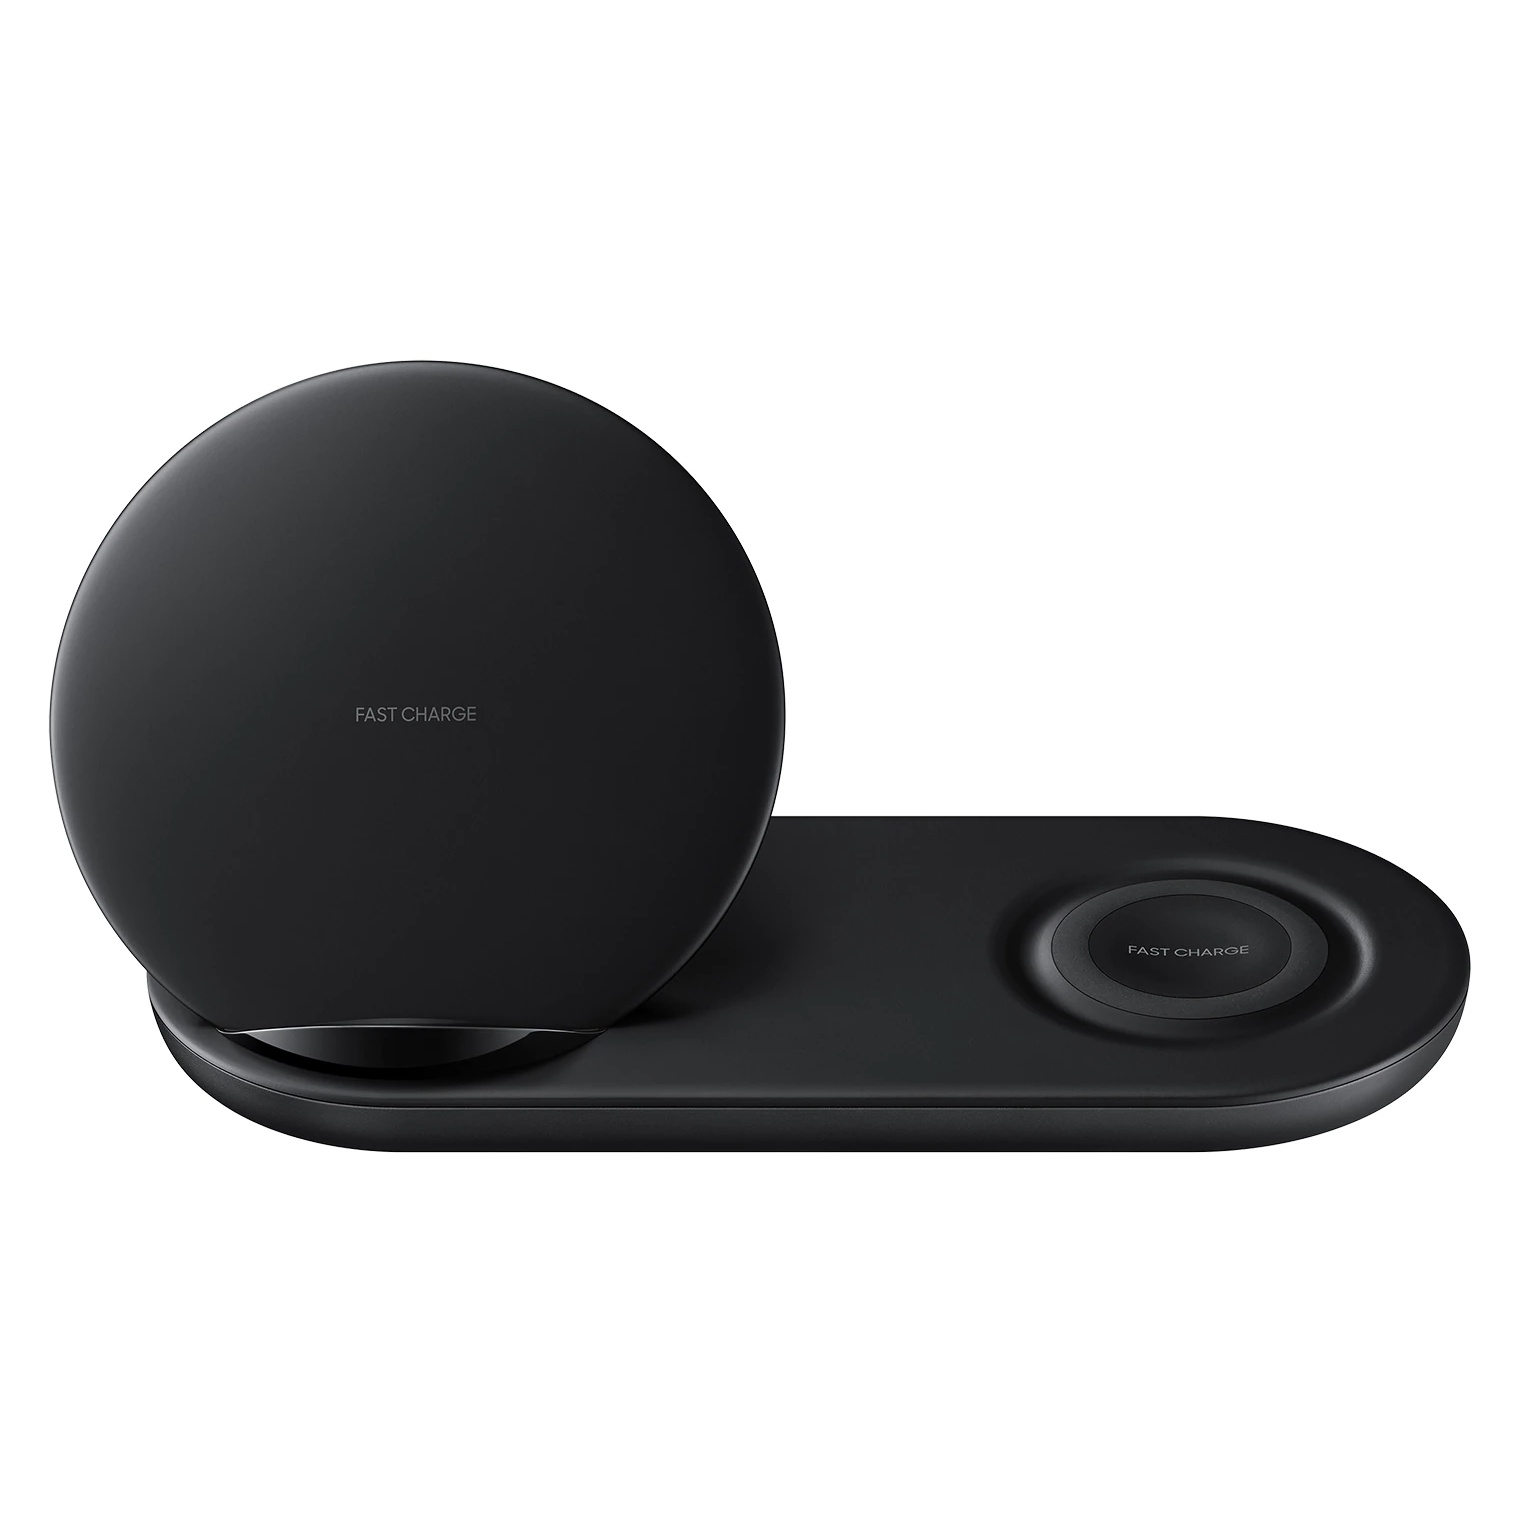 samsung fast wireless charger duo ep n6100 black expansys hong kong. Black Bedroom Furniture Sets. Home Design Ideas